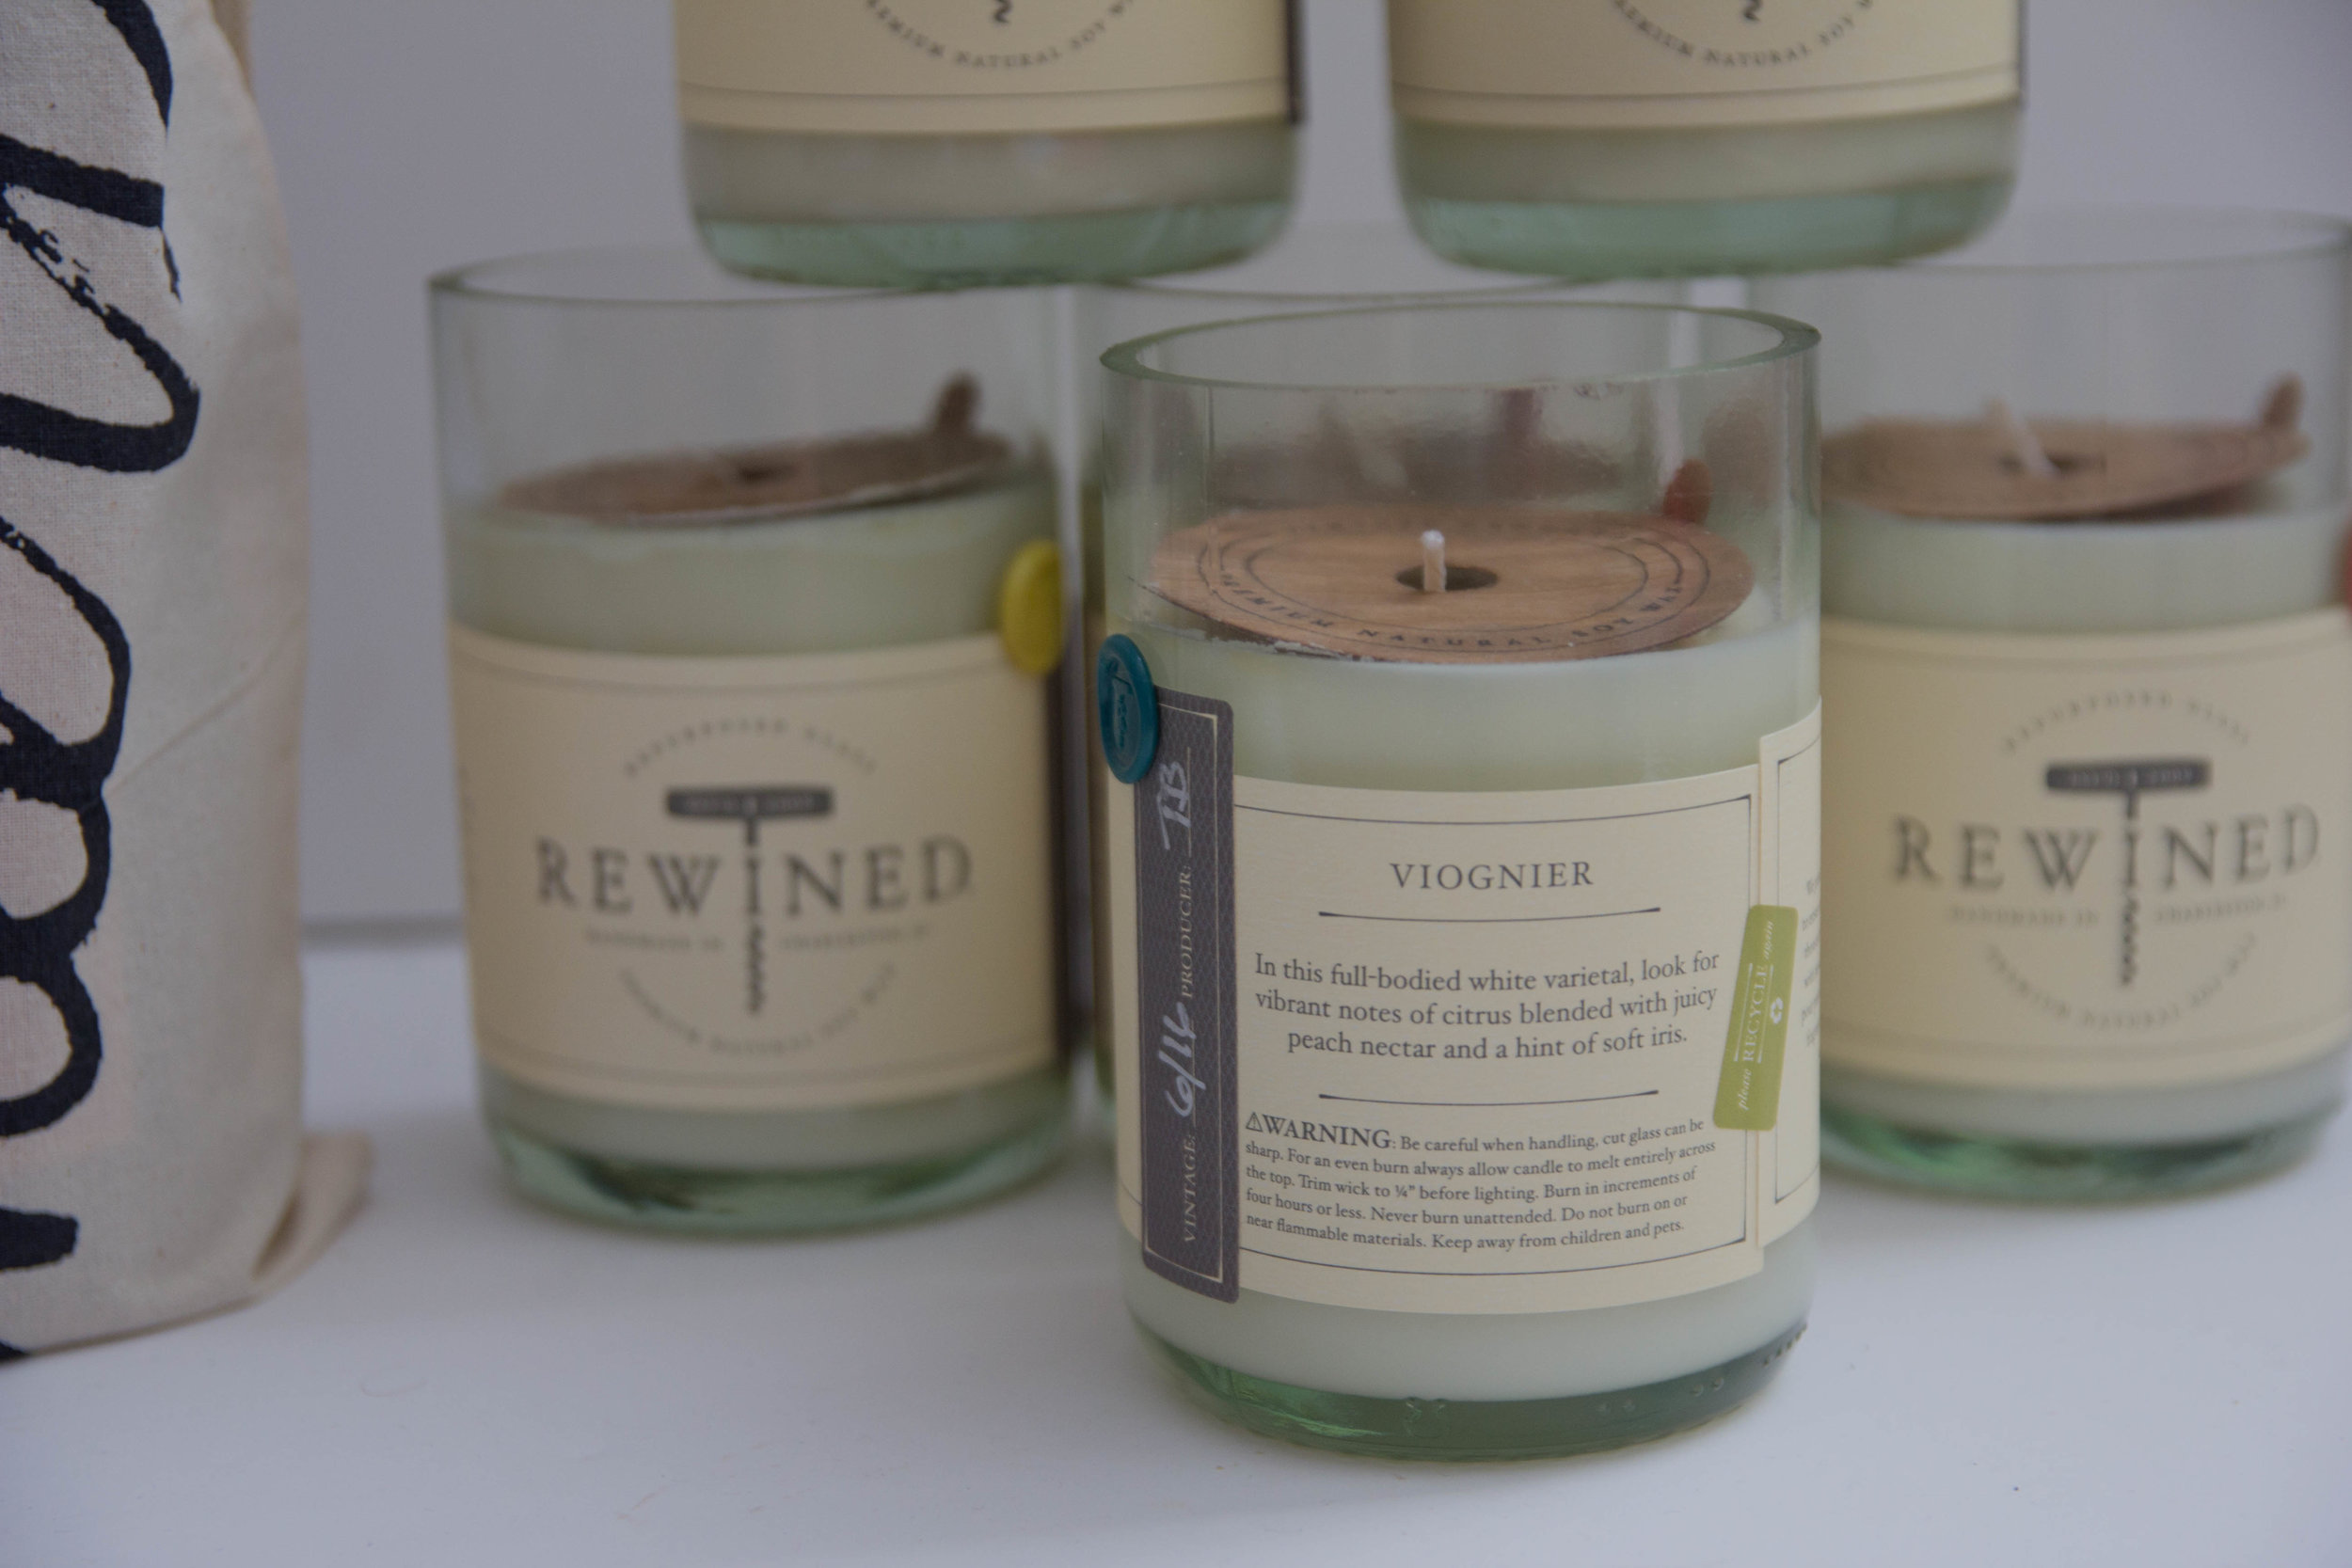 rewined candles, wine candles, charleston, south carolina, farmers market, blanc collection, wine candles, what to get as a hostess gift, the perfect hostess gift no matter the occasion, hostess gift ideas